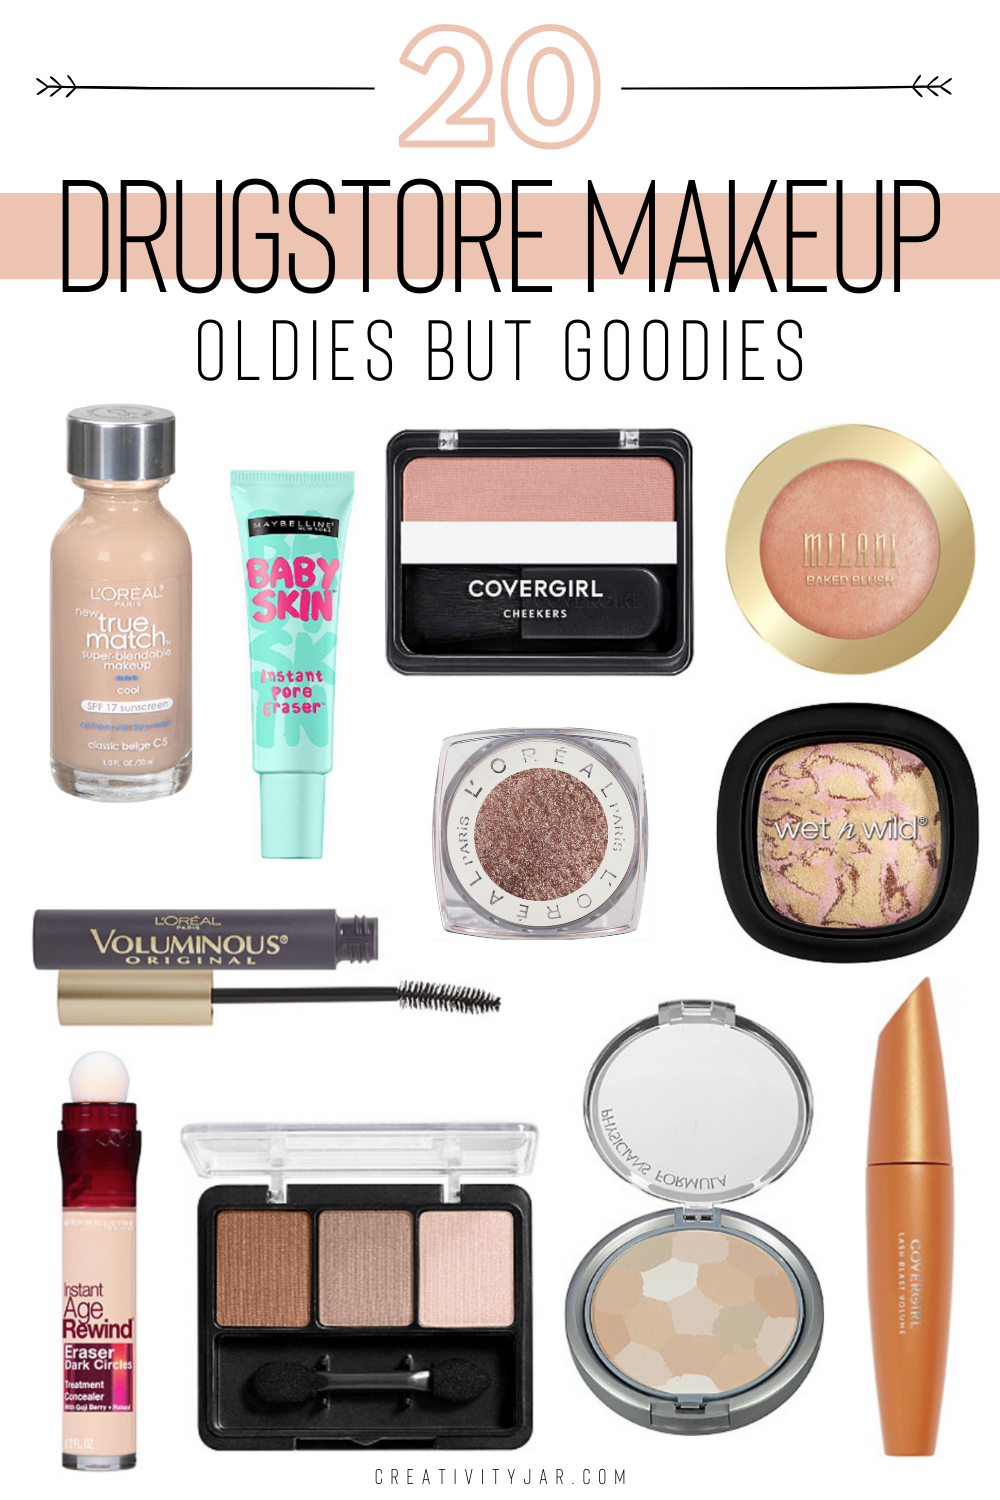 Timeless Bestselling Drugstore Makeup Products